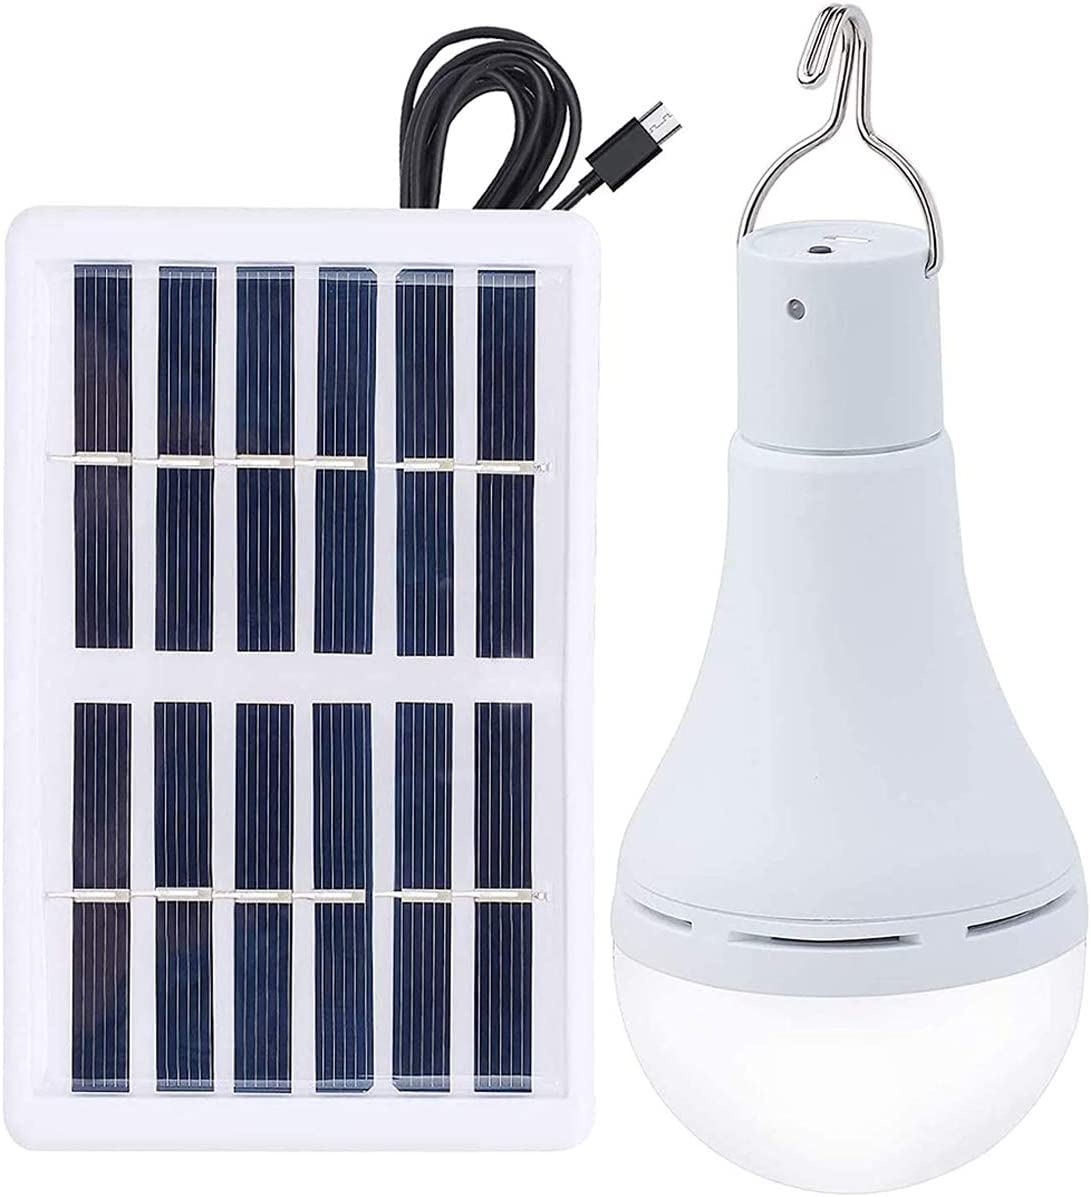 9W Solar Light Bulb Three Level Shed Ranking TOP2 for Camping Balcon Dimmable Sales for sale